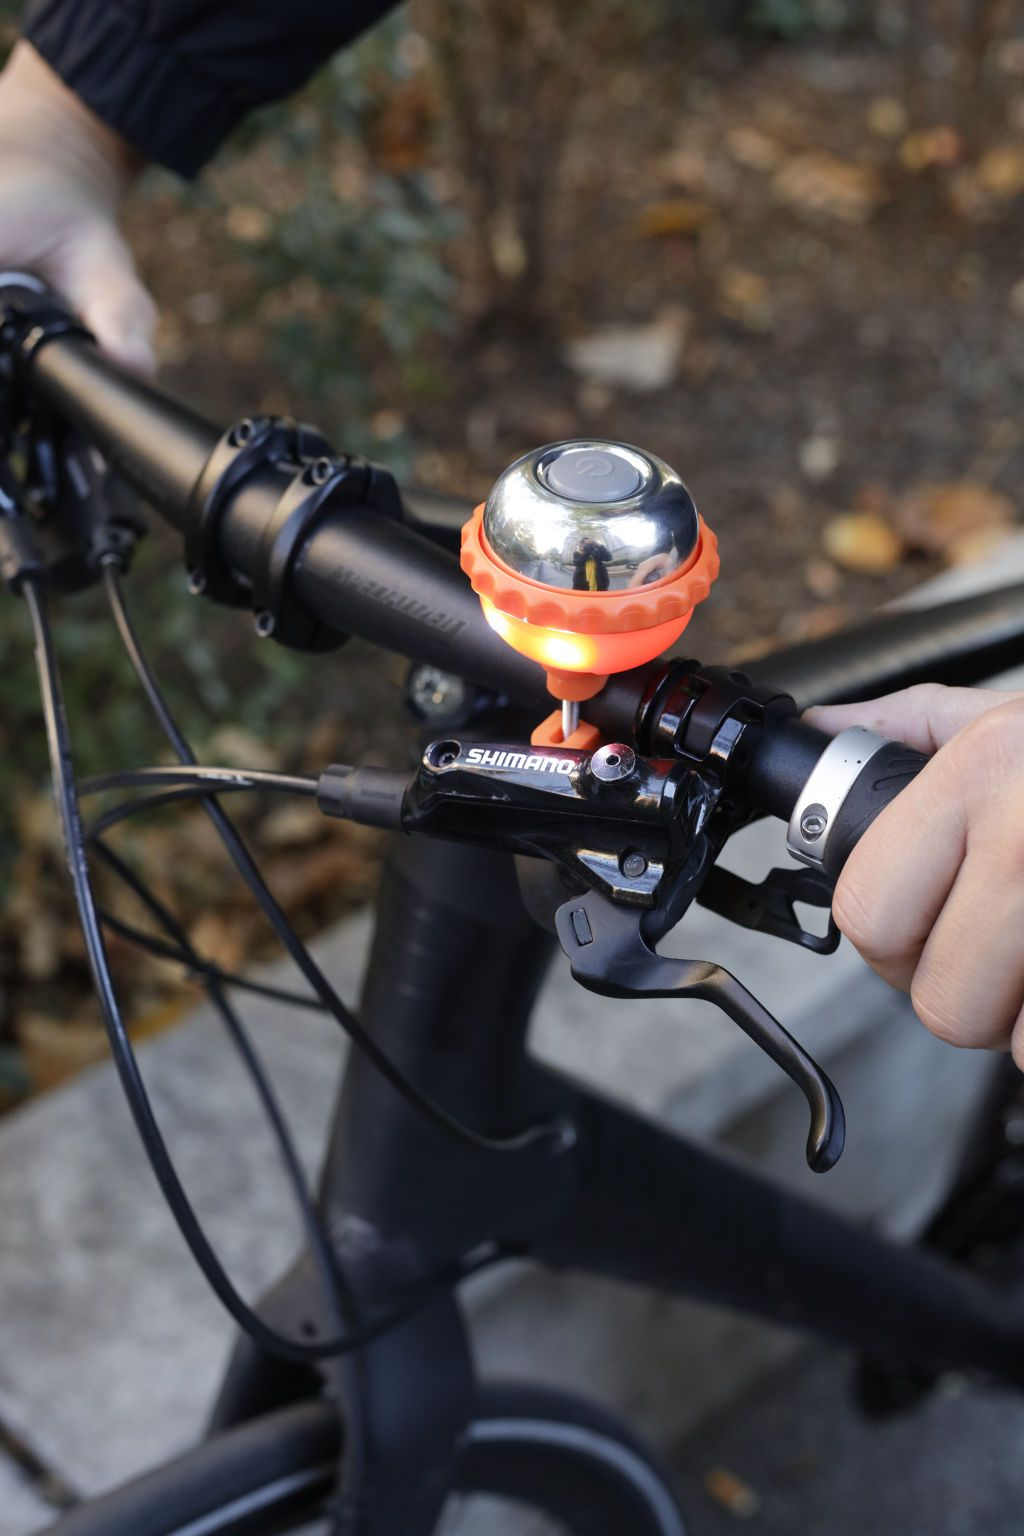 6c1e07b1079 Bell light is removable for theft prevention. Includes two screw sizes to  fit to different handlebar sizes.  bell  bike  kikkerland  outdoors